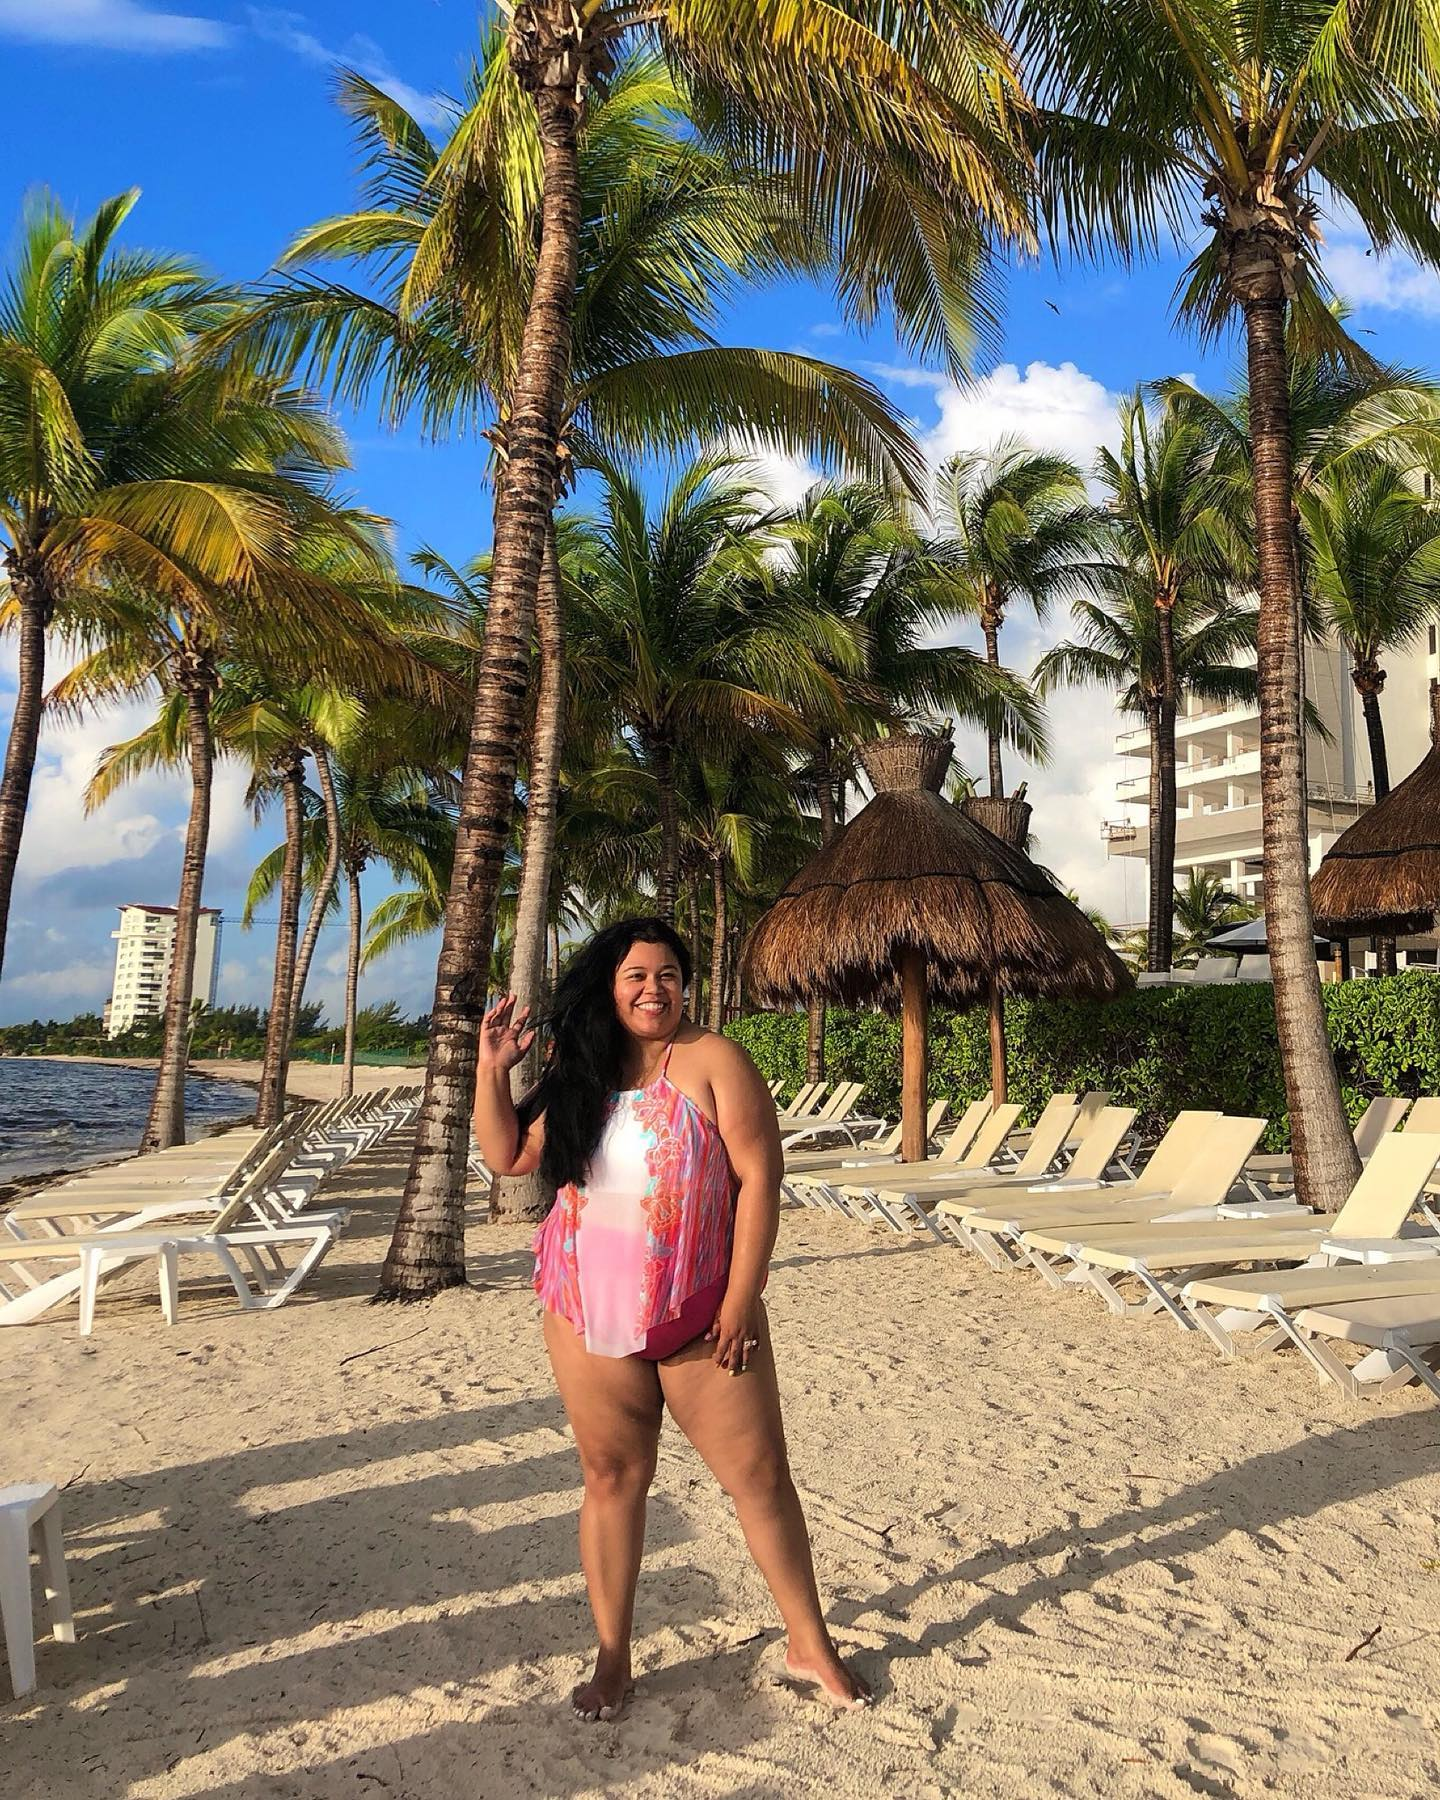 ea19f546a8e4a #AD Happy Sunday everyone andGreetings for Cancun! I'm having so much fun